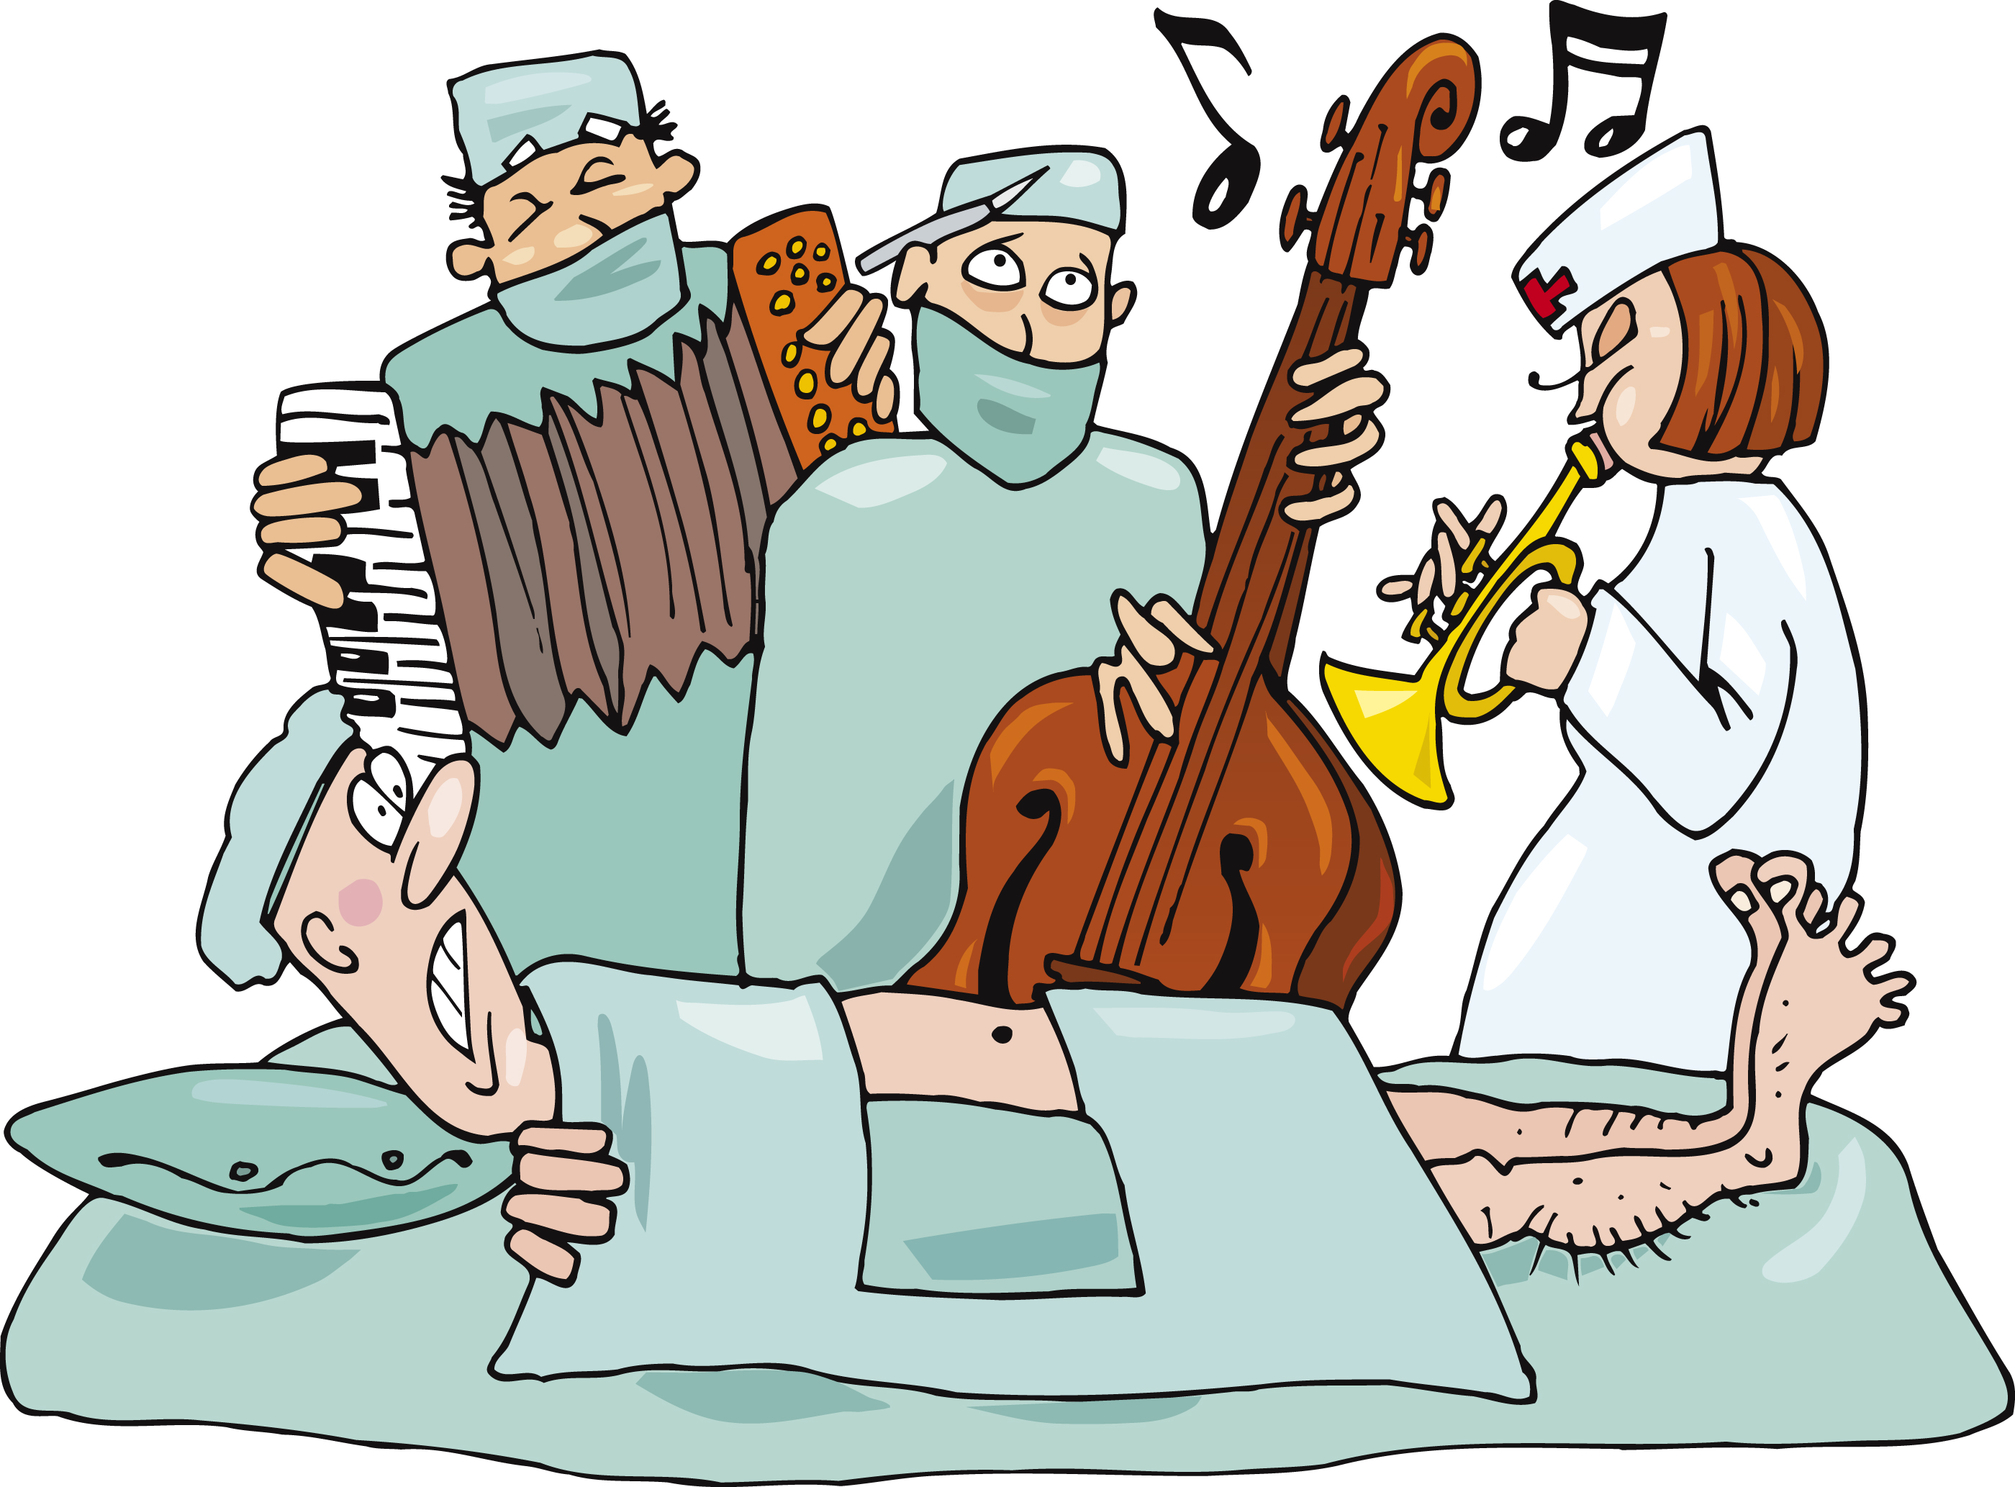 Twerking in the Operating Room – What's On Your Playlist?